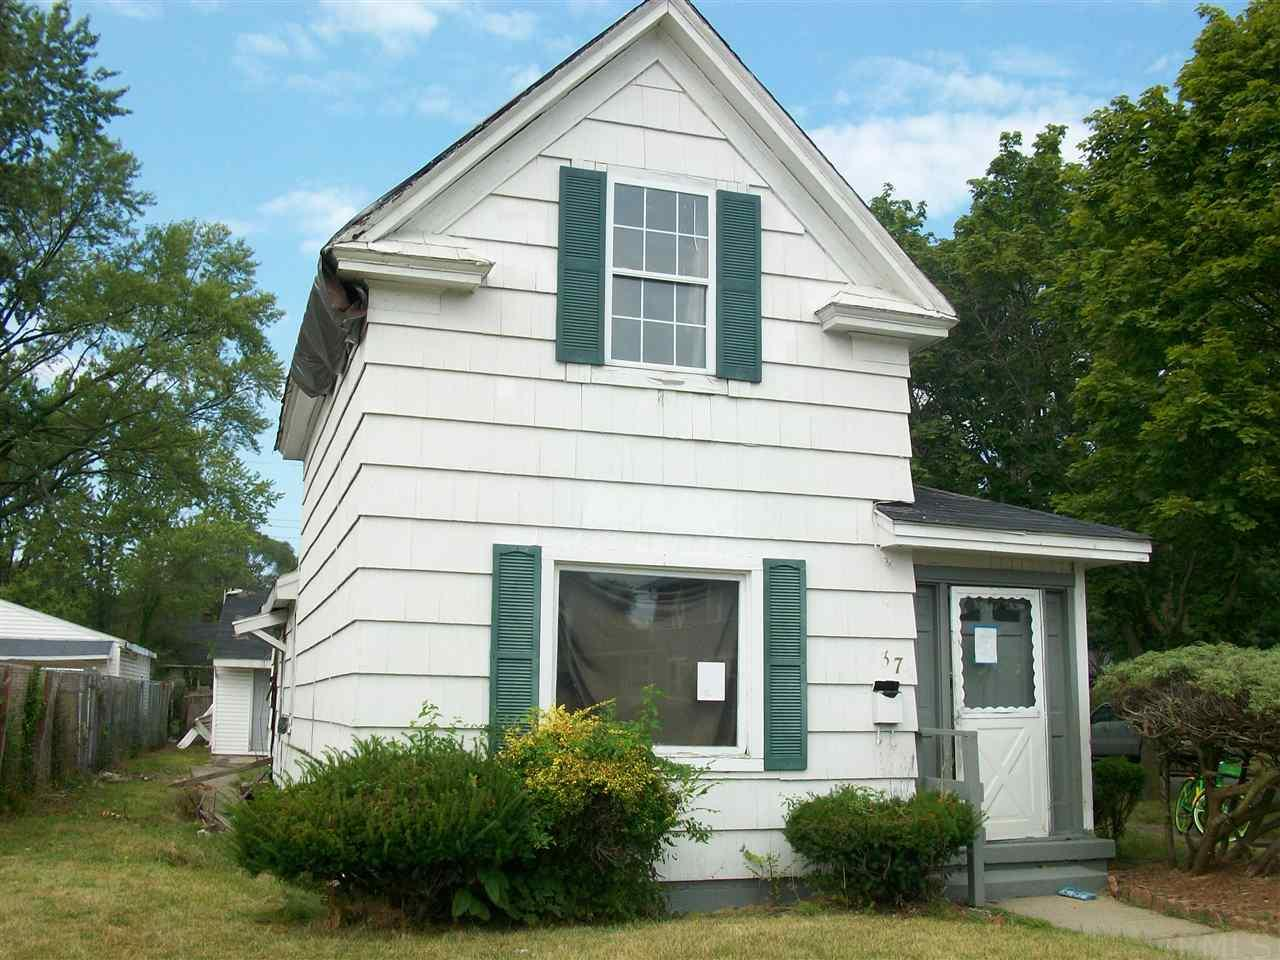 737 N Johnson South Bend, IN 46628